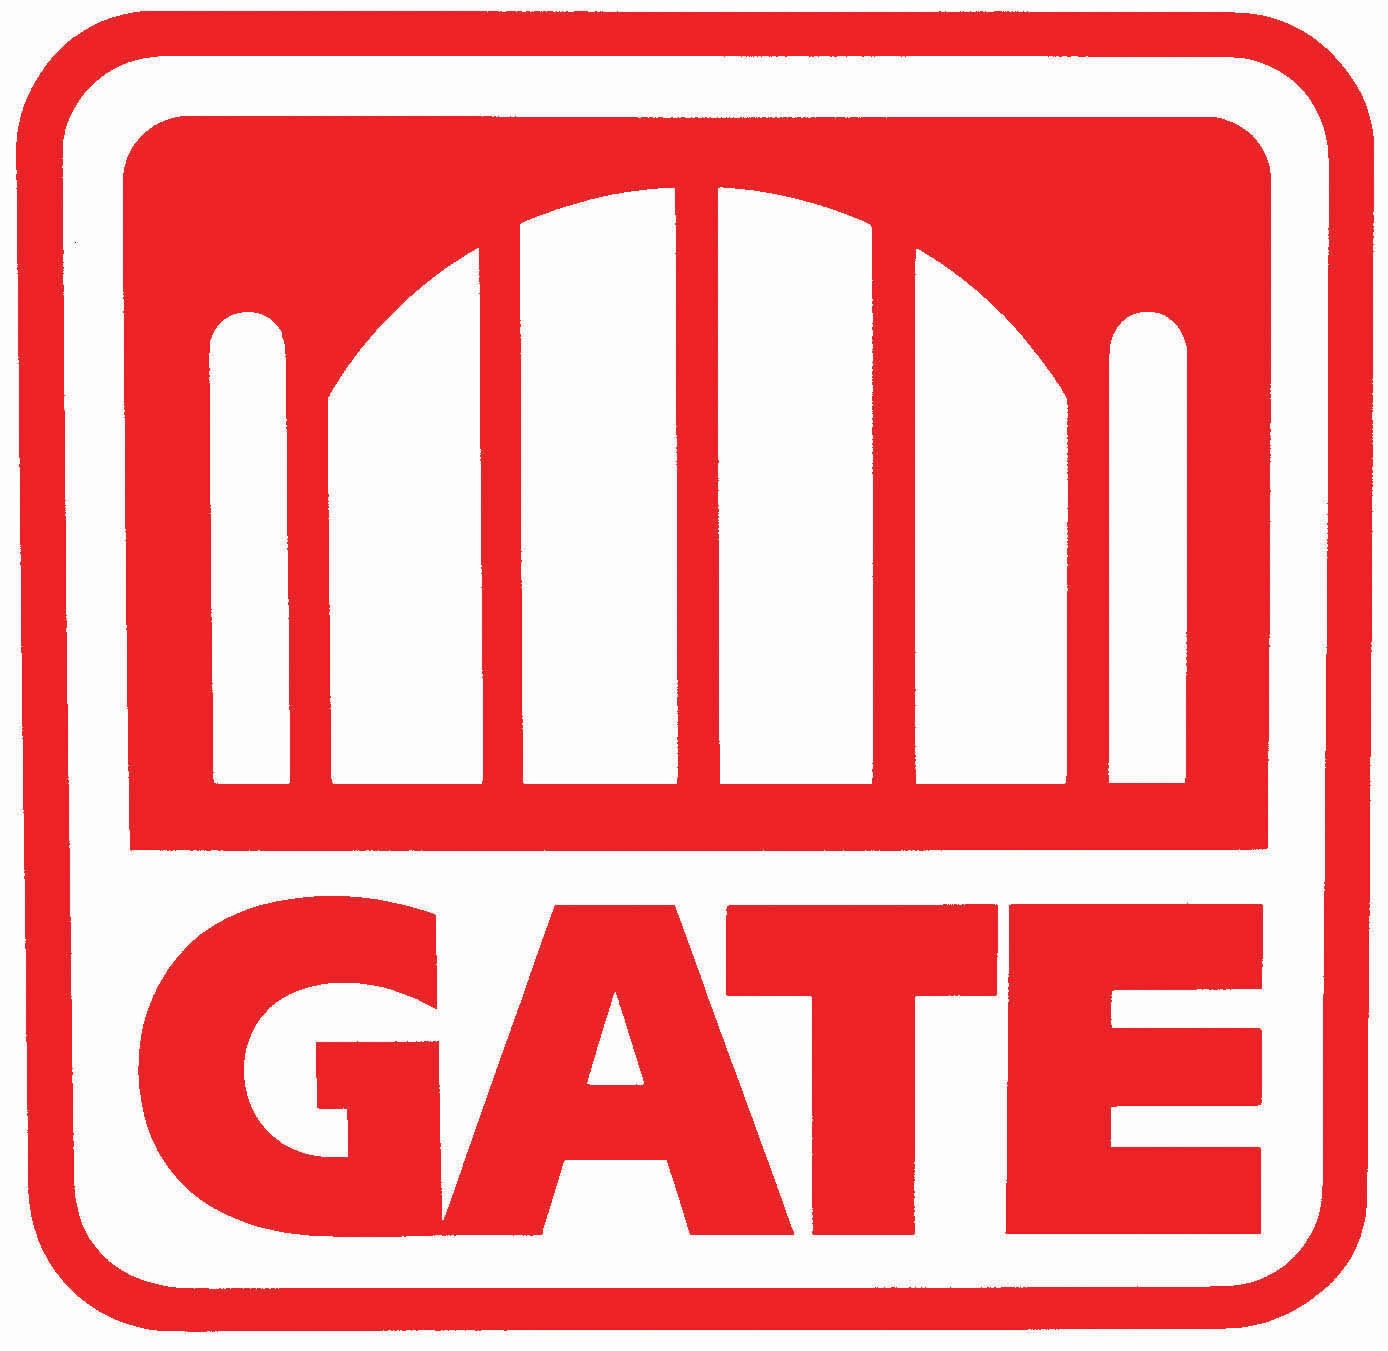 Precast Design Awards Bestowed Upon Gate Precast Company